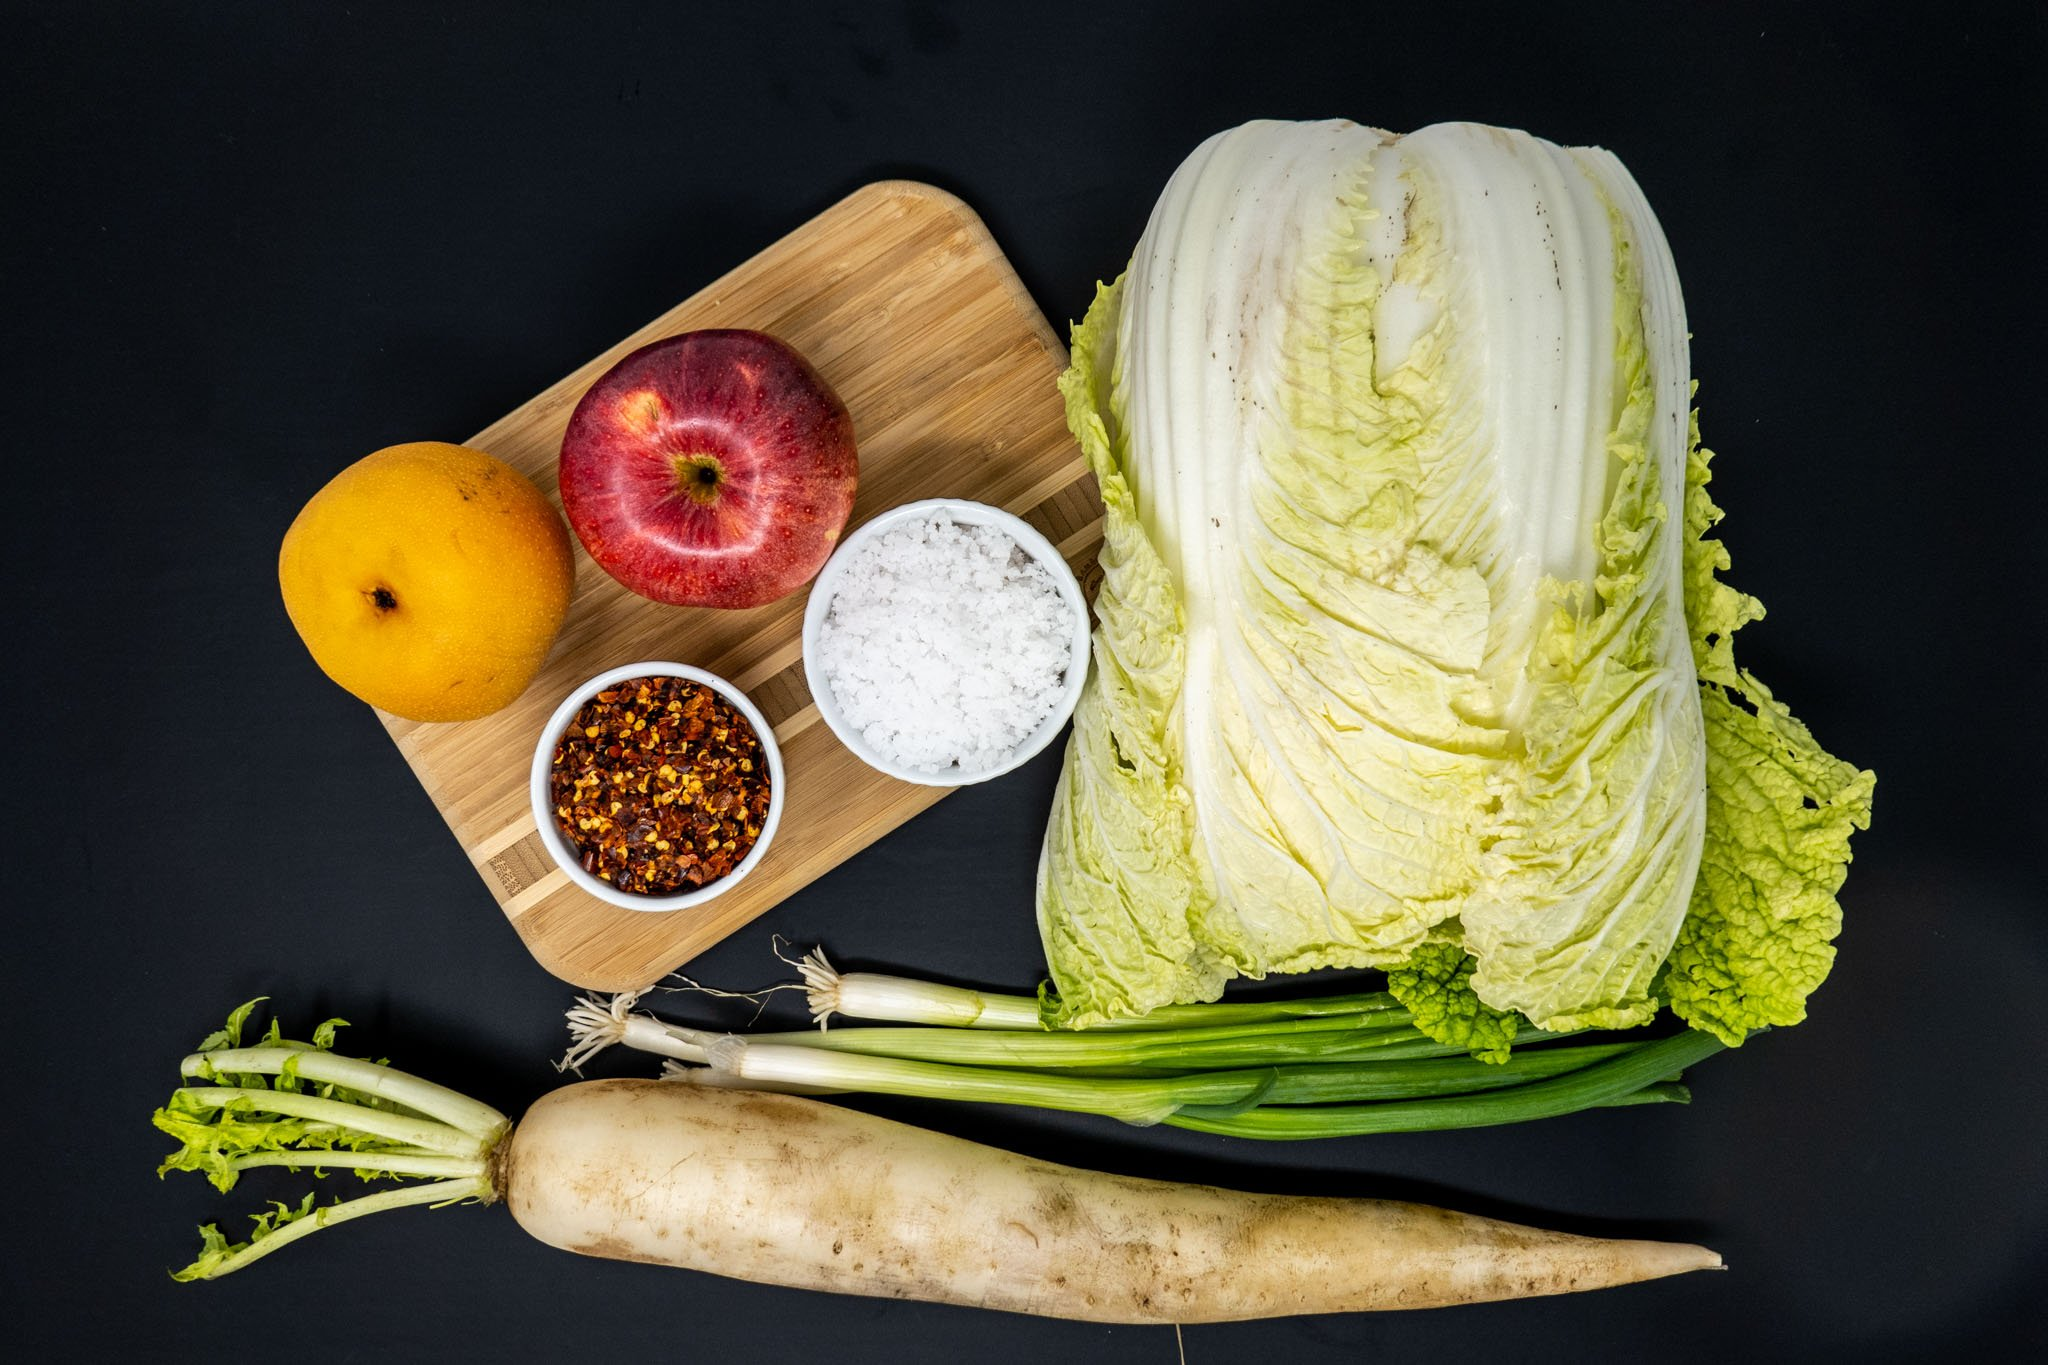 Cabbage, daikon radish, Asian pear, and other ingredients for the Korean kimchee recipe on the table